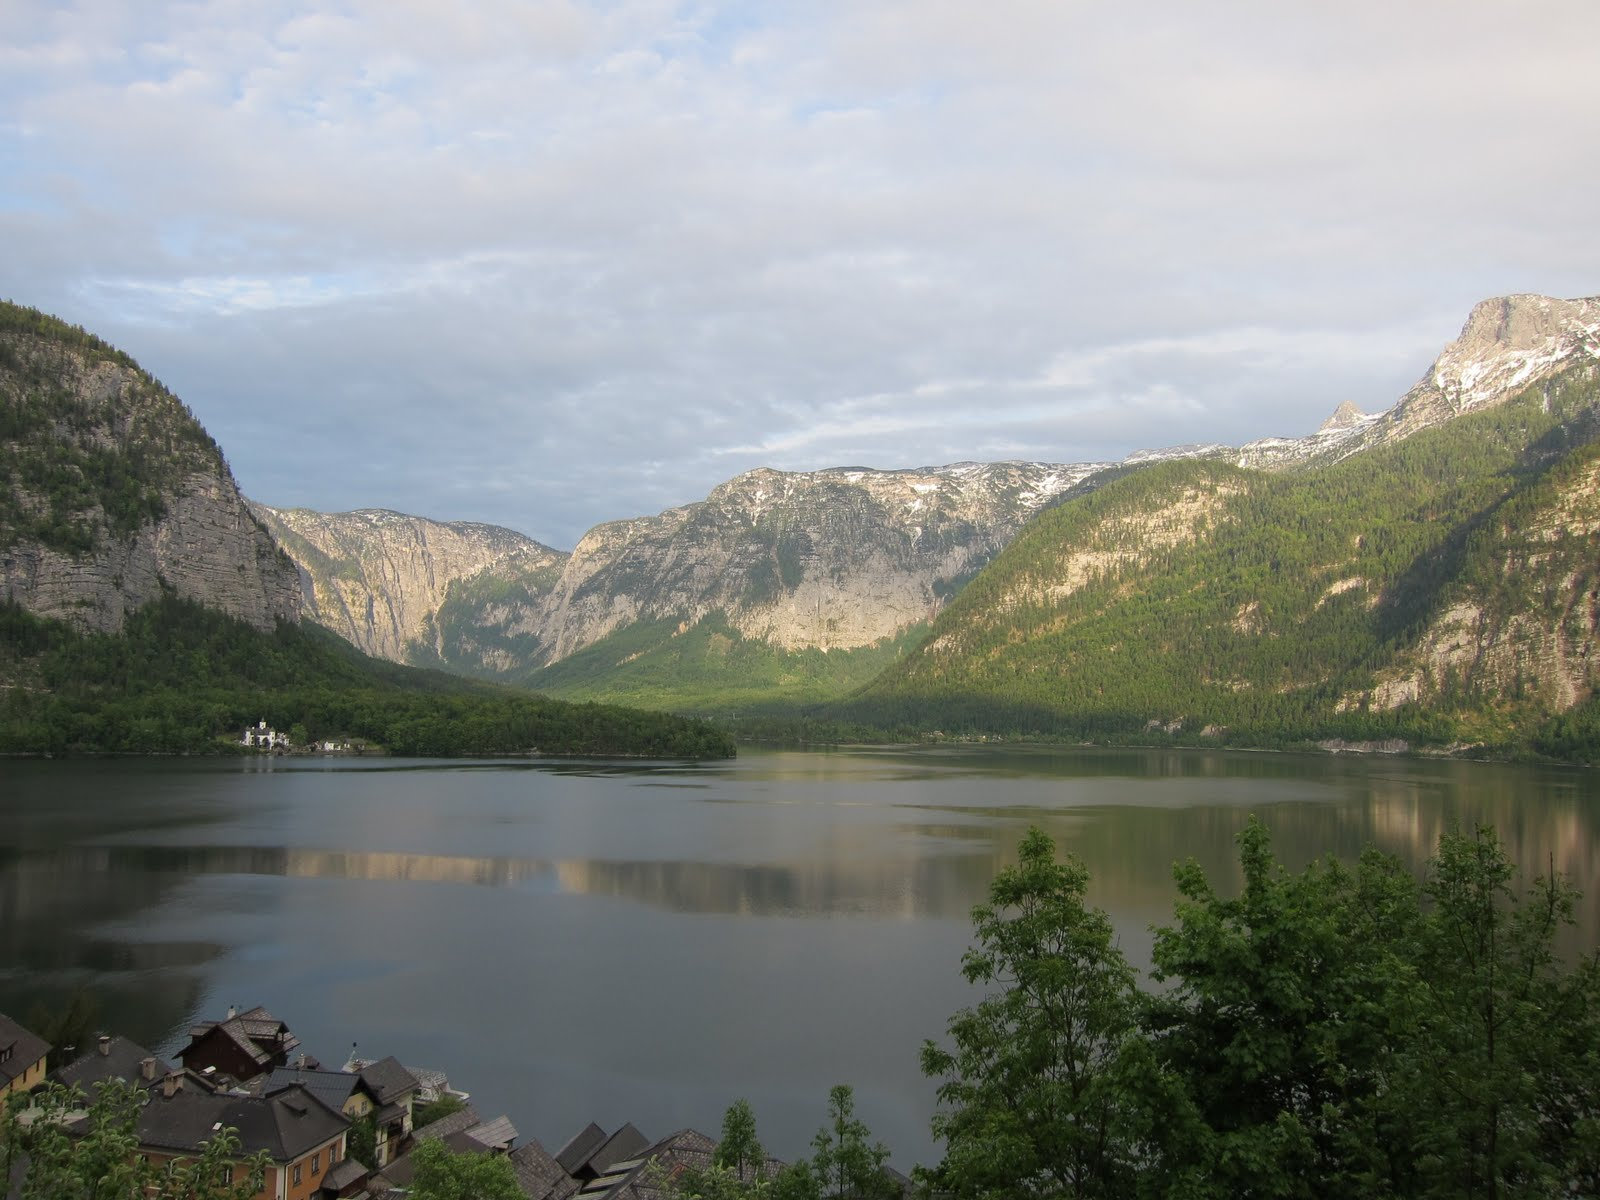 Hallstatt and its lake